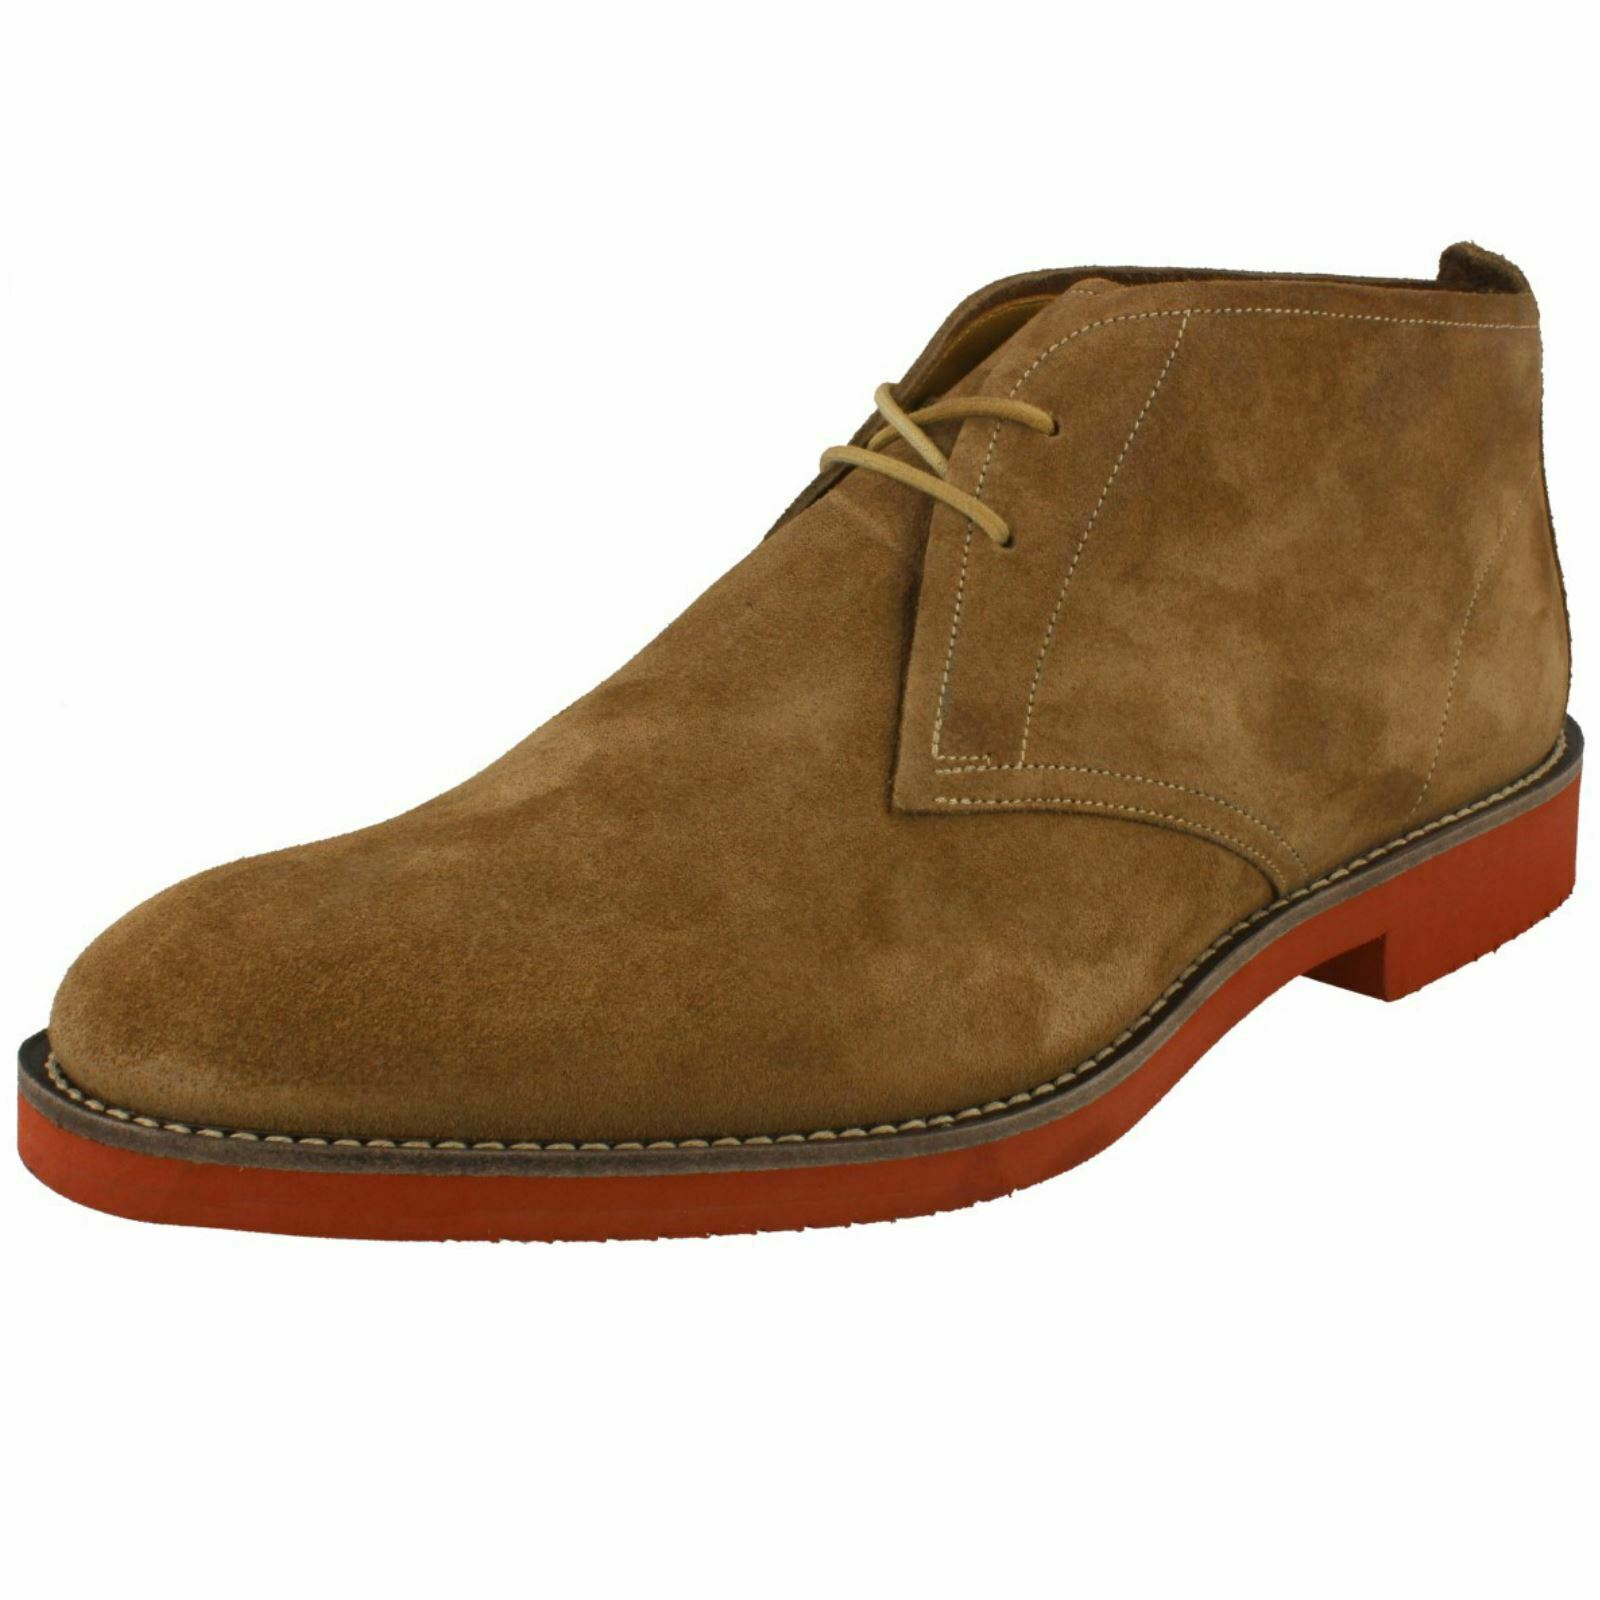 Mens Loake Desert Style Lace Up Stiefel Lennox